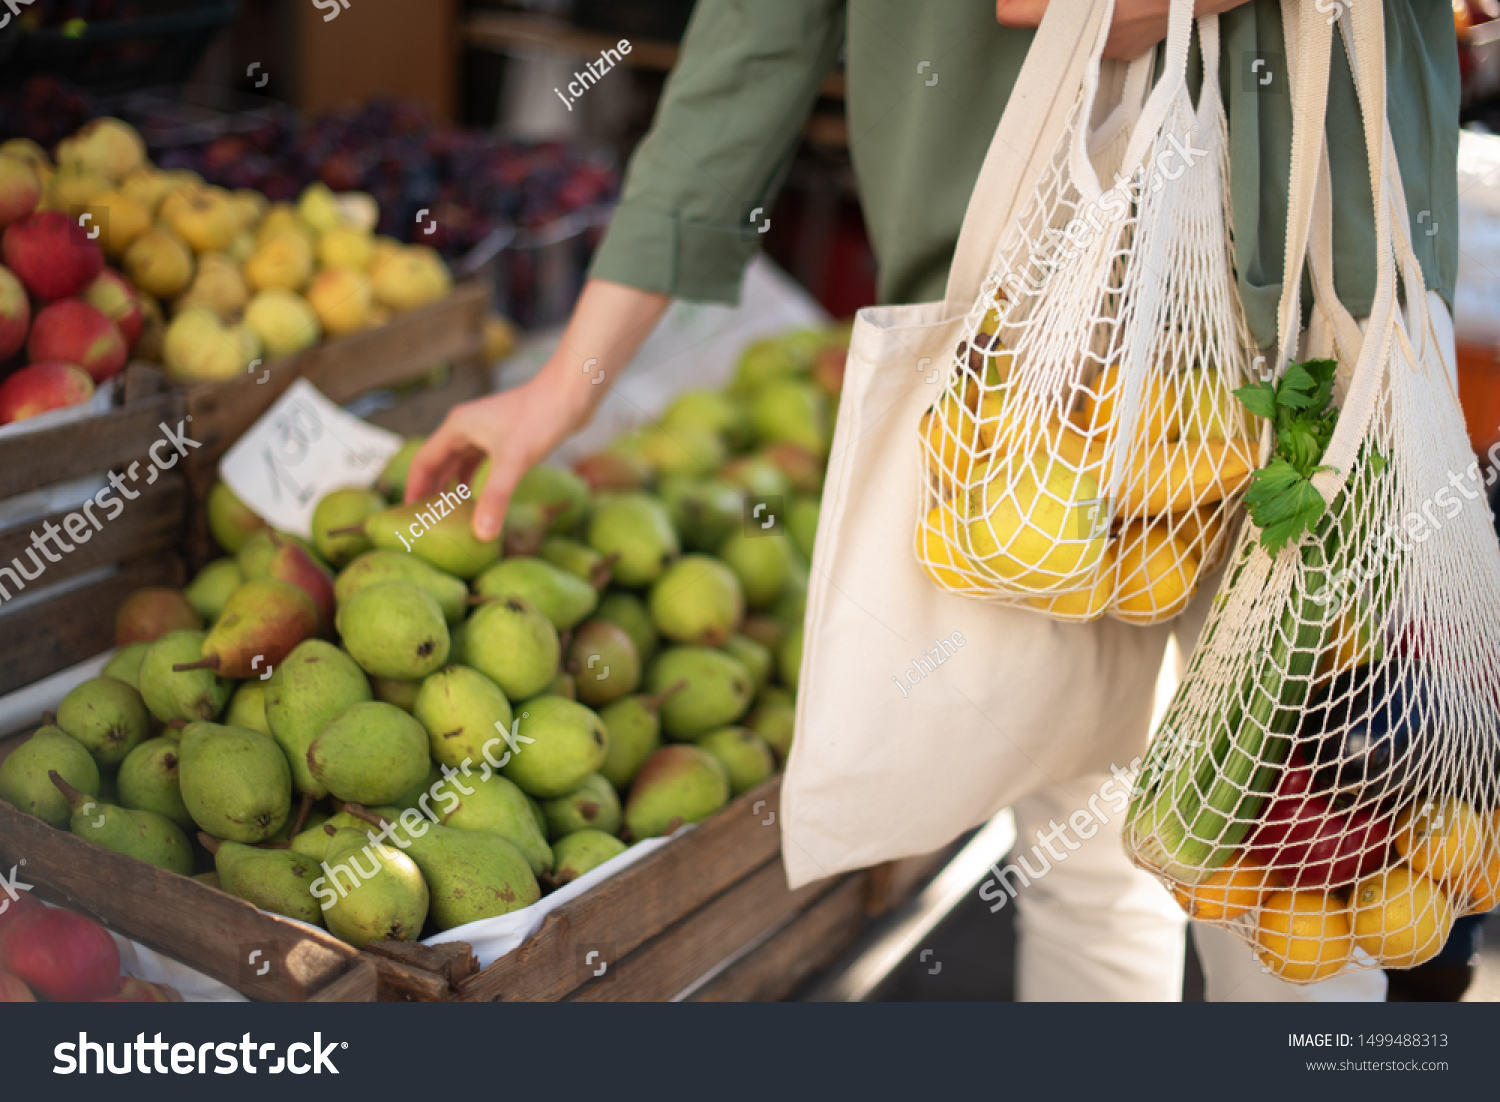 Woman chooses fruits and vegetables at farmers market. Zero waste, plastic free concept. Sustainable lifestyle. Reusable cotton and mesh eco bags for shopping #1499488313